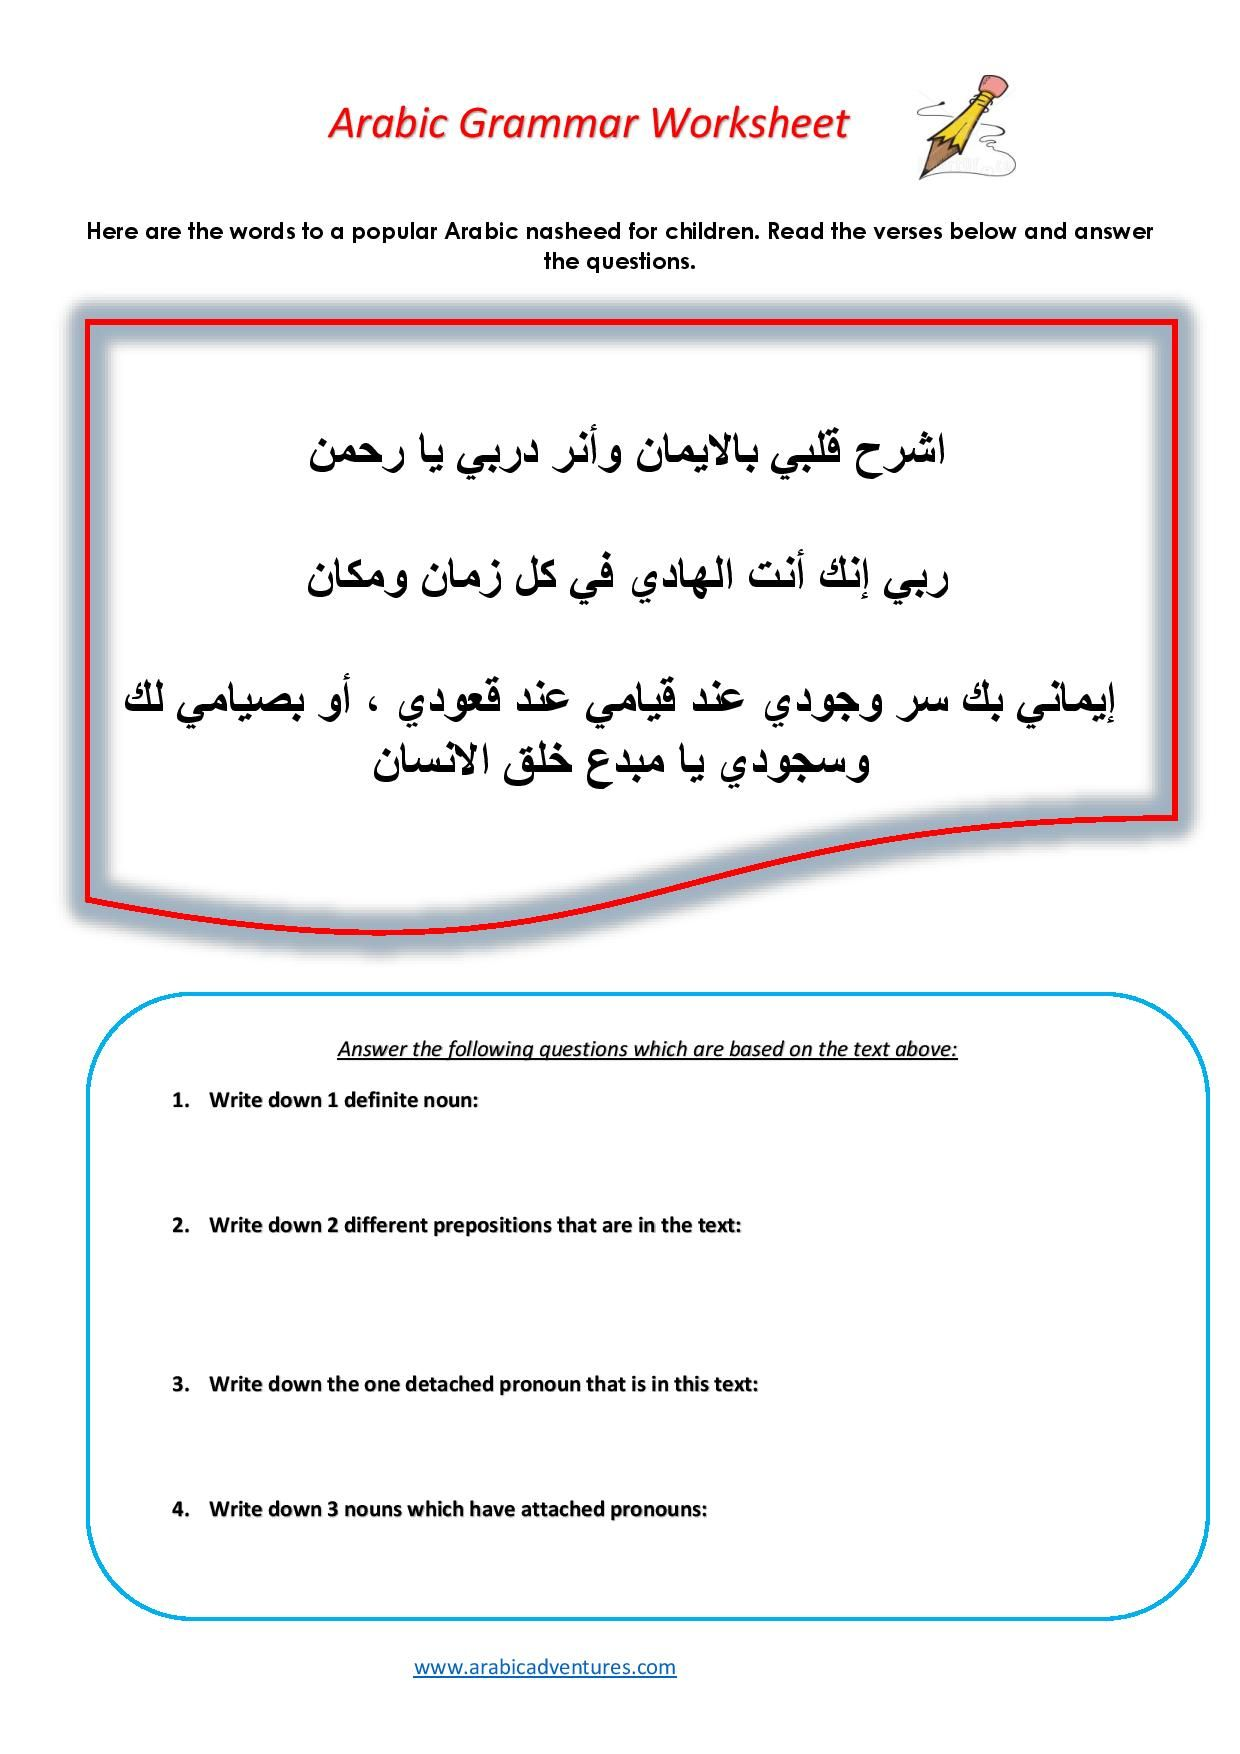 worksheet Grammar Review Worksheets arabic grammar review worksheet using a popular nasheed for children in get the free